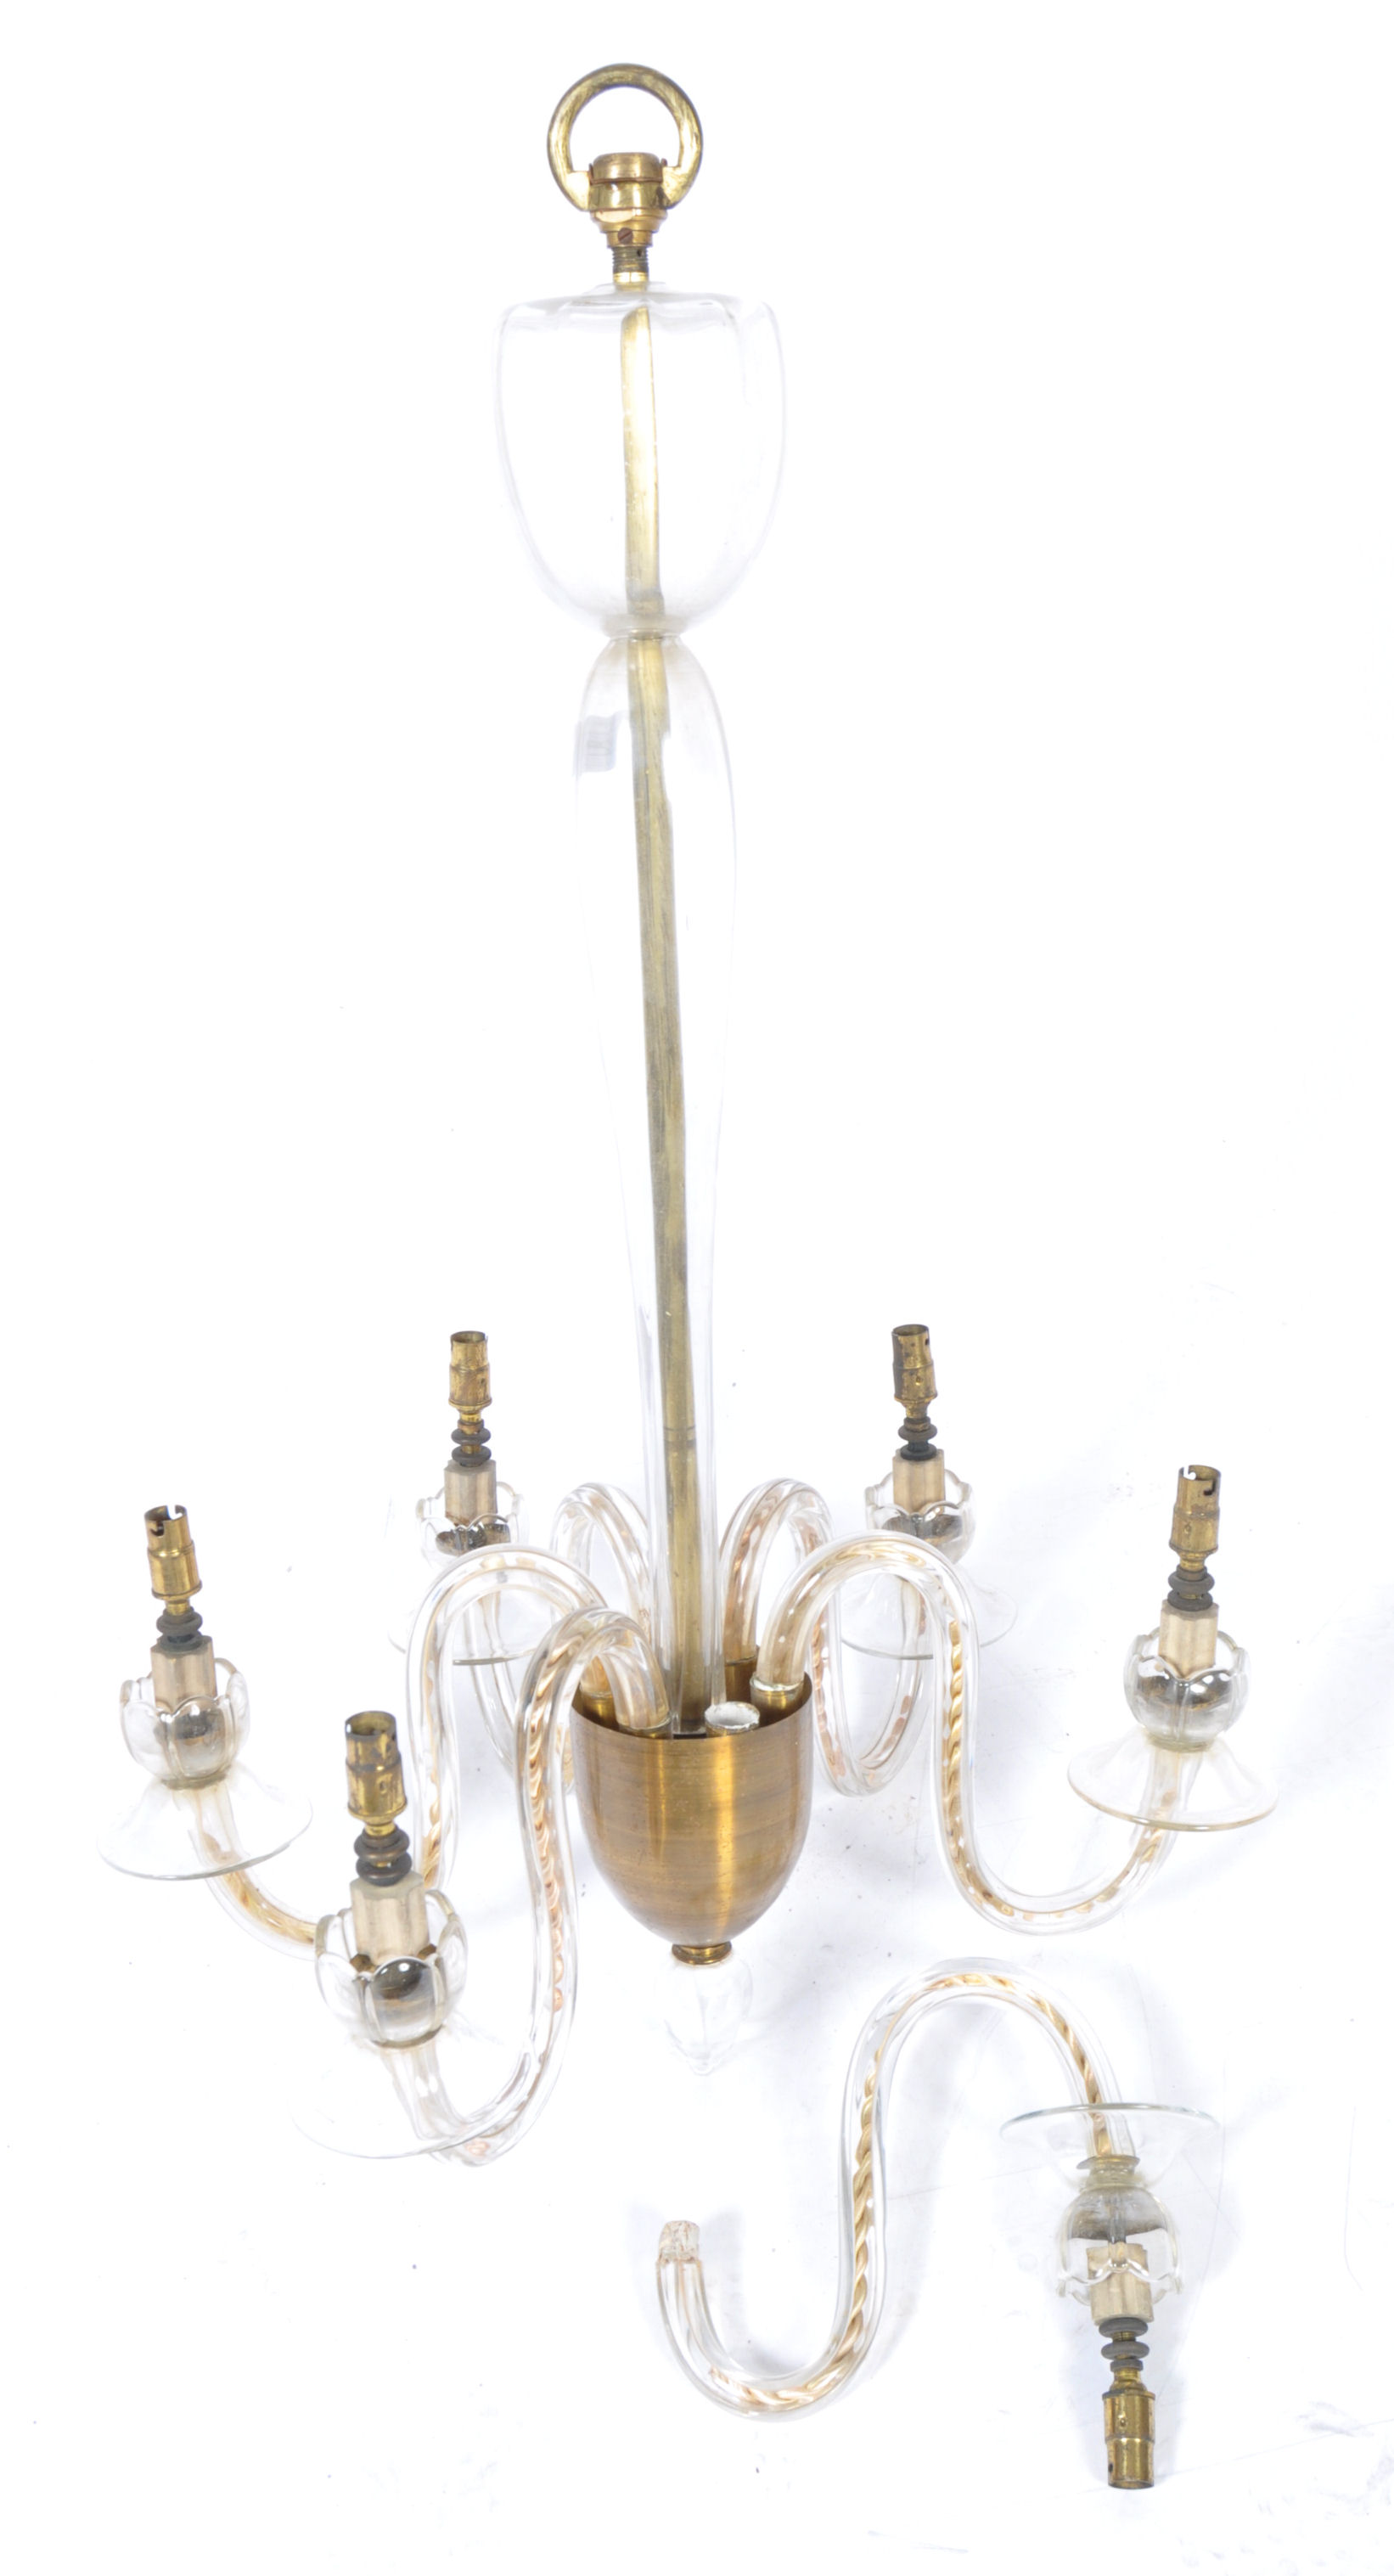 Lot 222 - 19TH CENTURY VICTORIAN BRASS AND GLASS 6 BRANCH CH